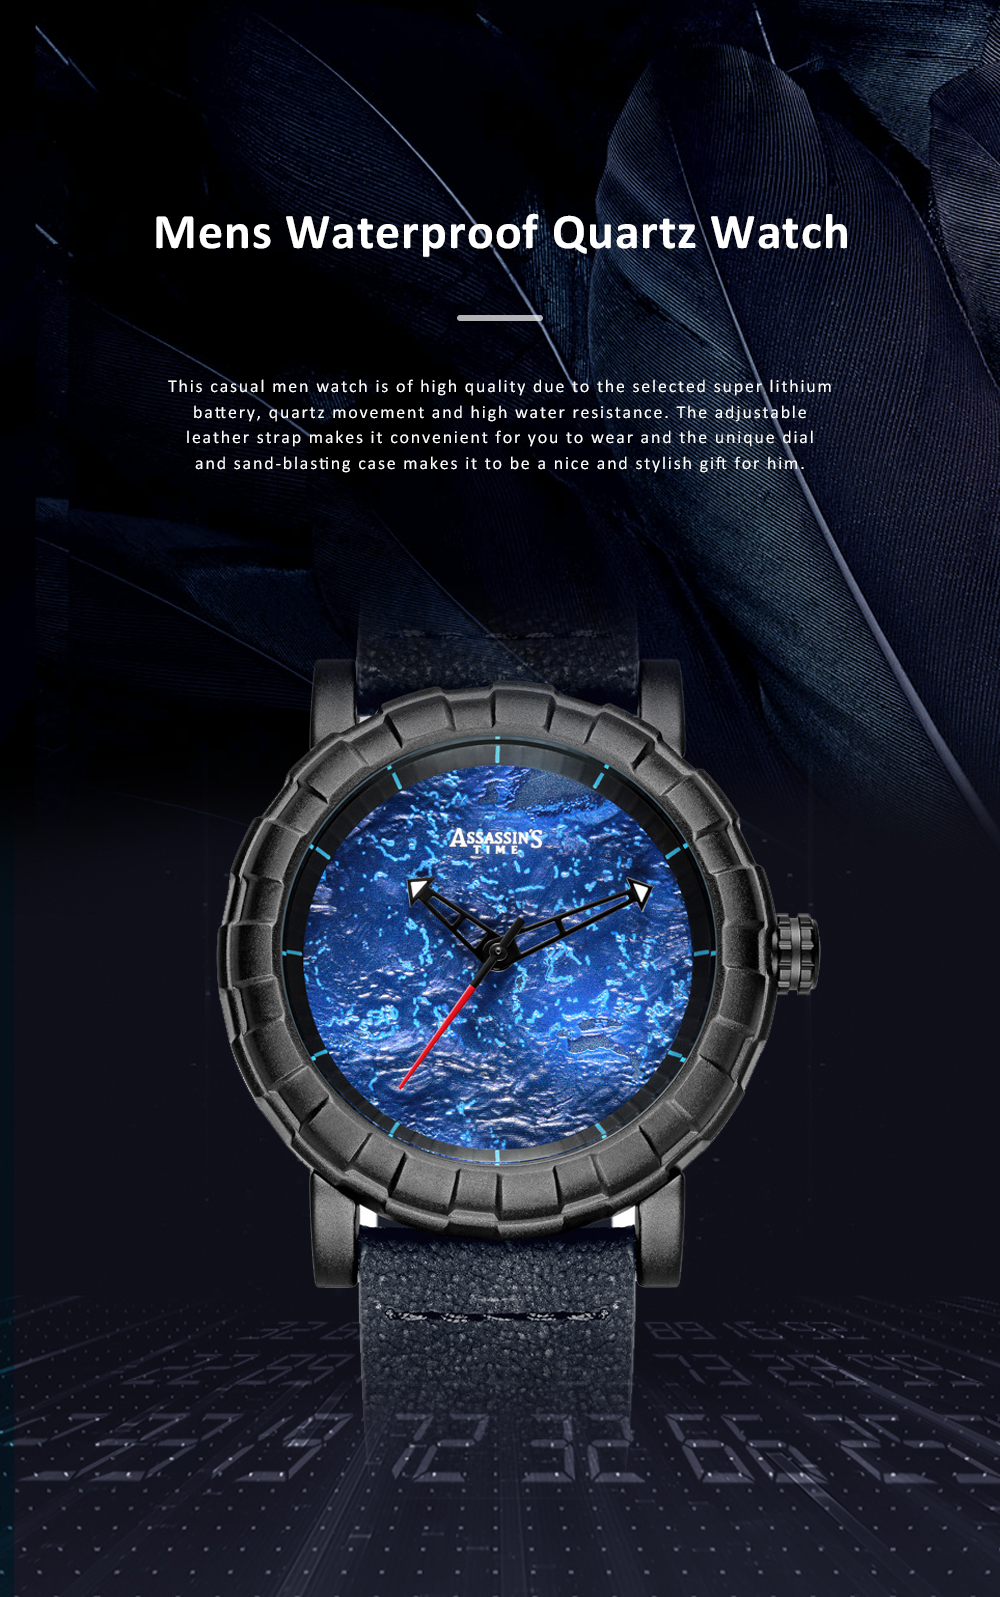 Burning Fire Creative Waterproof Electronic Watch for Men Casual with Quartz Movement and Adjustable Leather Strap 0